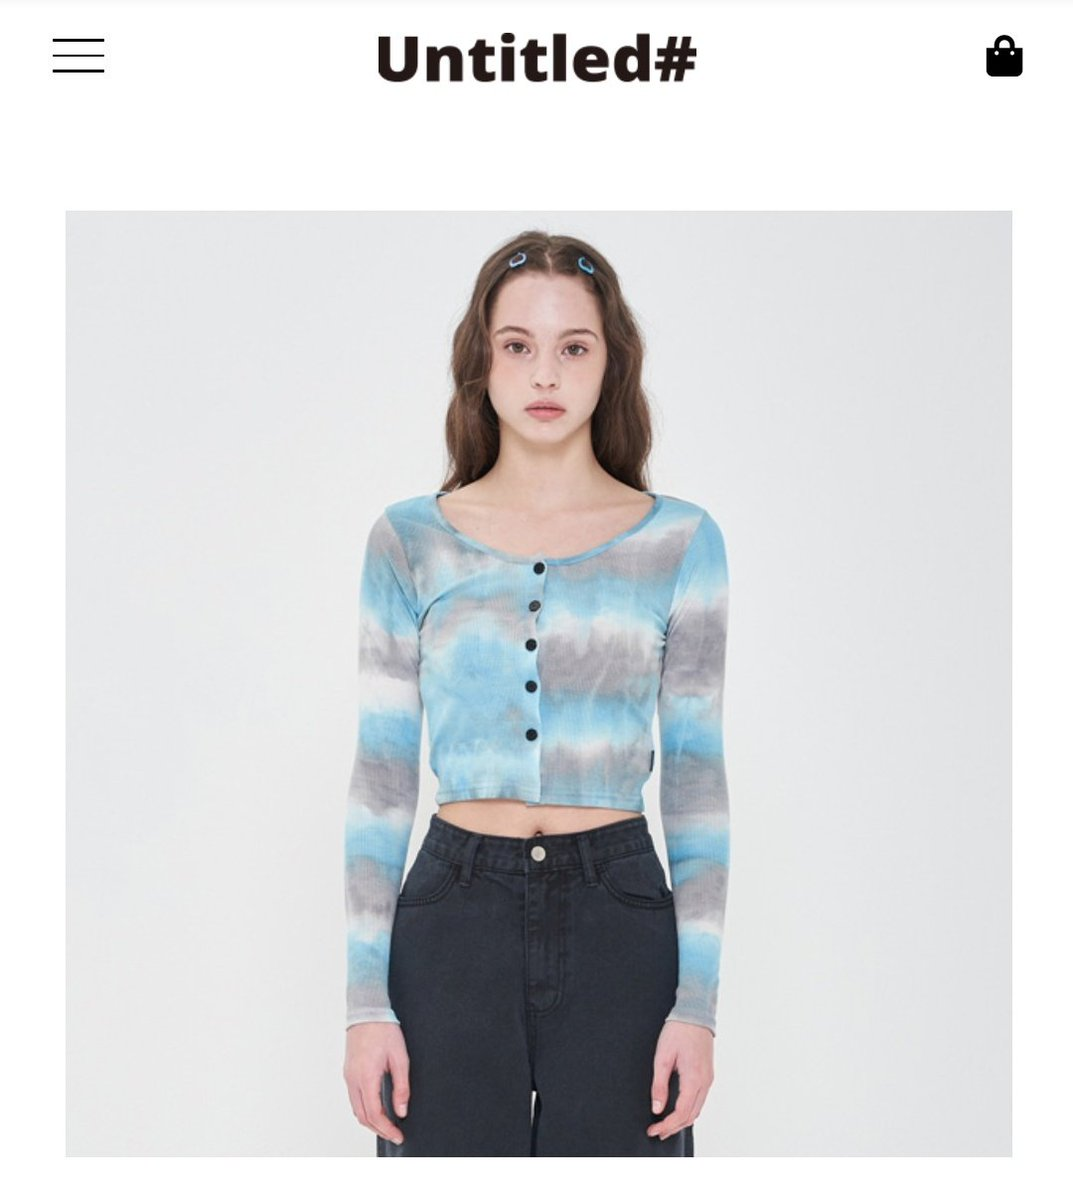 """200703 The tie dye cardigan that Jennie wore on her Instagram story sold out the night after she uploaded; the website is now taking reservations until July 20. They tagged it as """"#JENNIE  Wear"""" (as worn by Jennie) @BLACKPINK<br>http://pic.twitter.com/st9AvQYsst"""